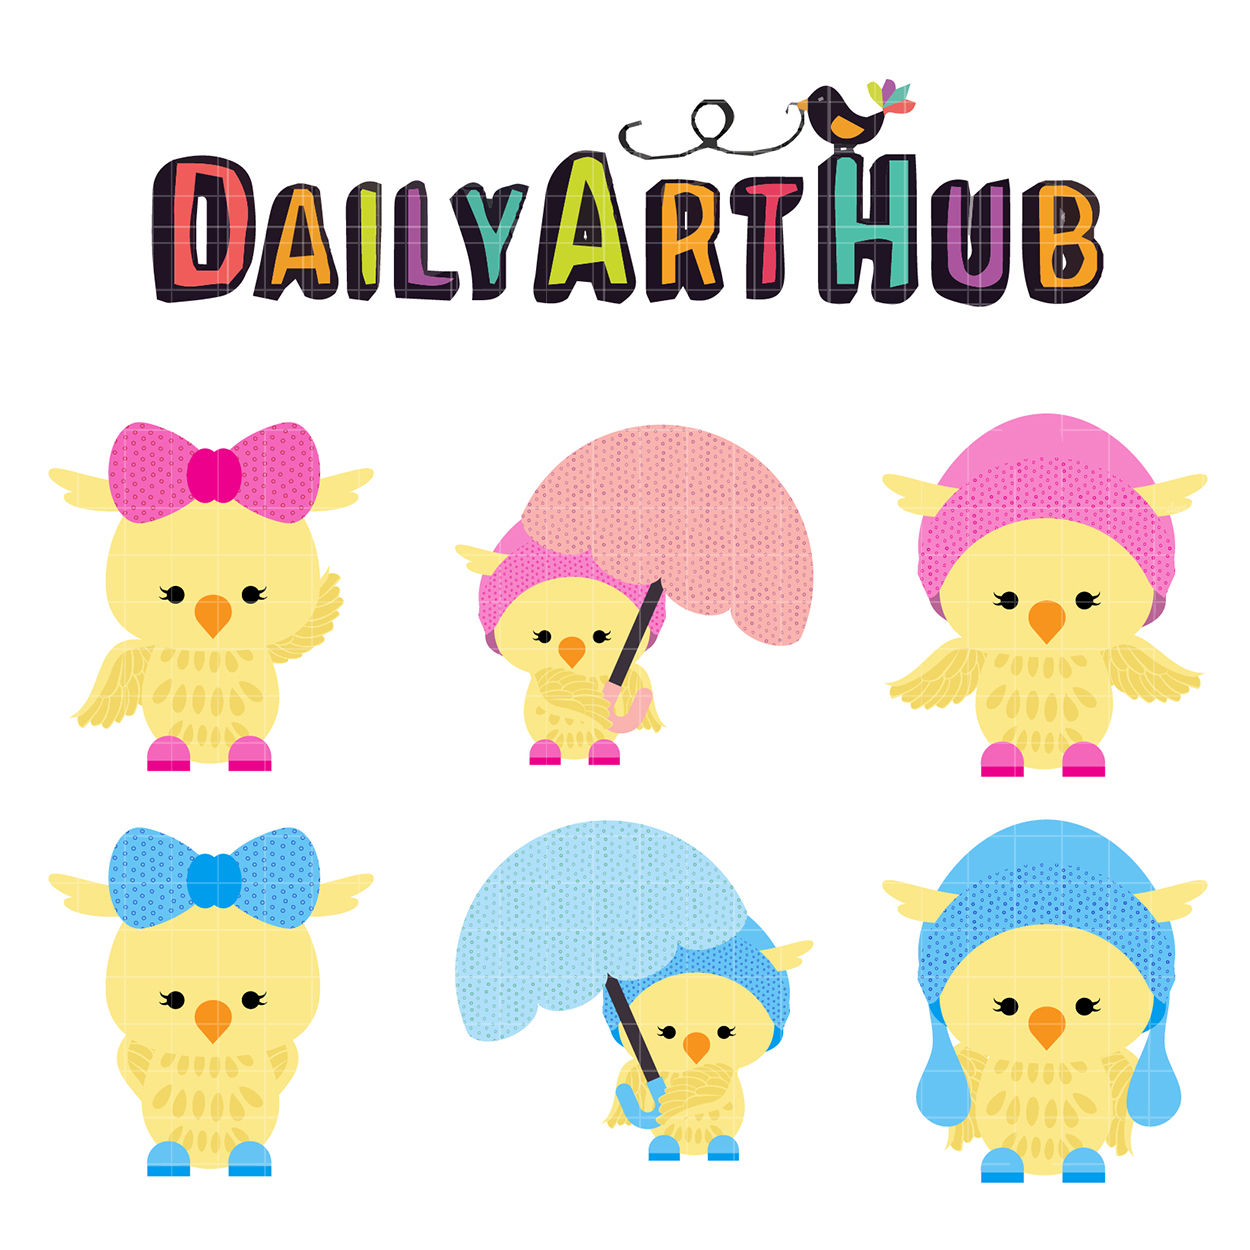 1250x1250 Girly Chick Clip Art Set Daily Art Hub Free Clip Art Everyday